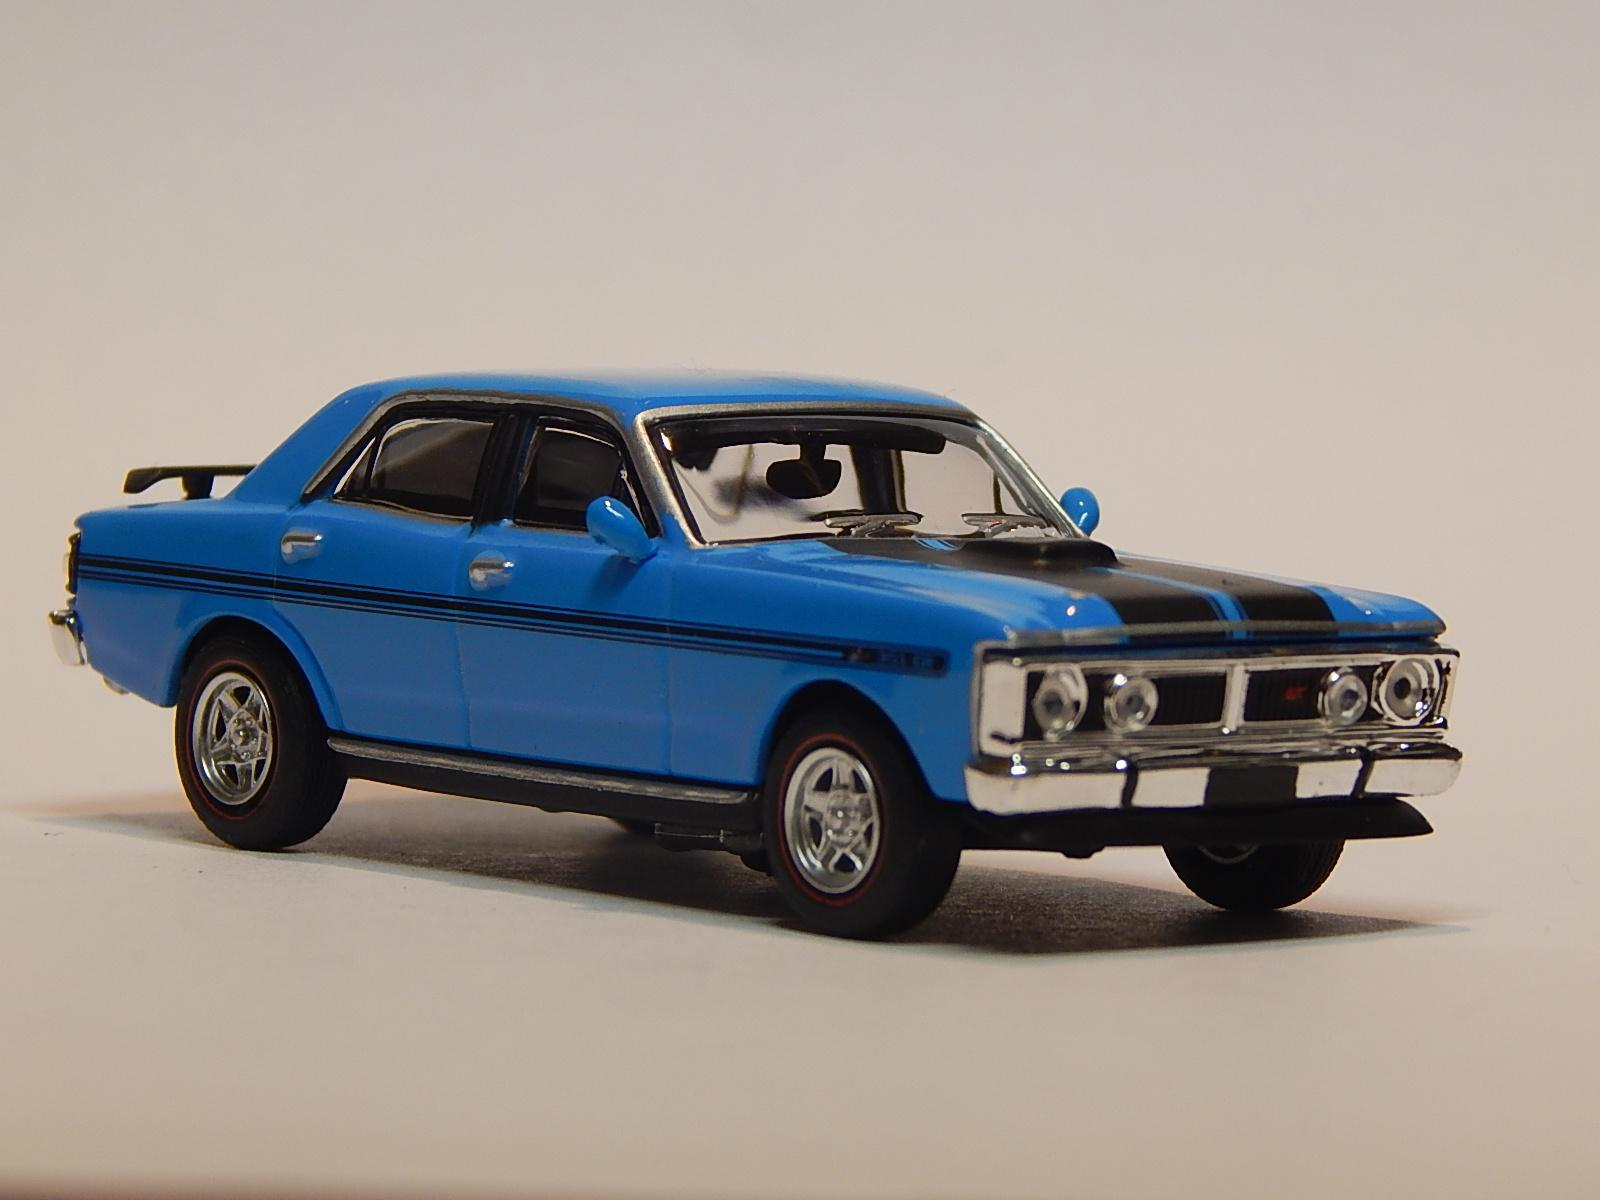 Car Show] March: Muscle Cars